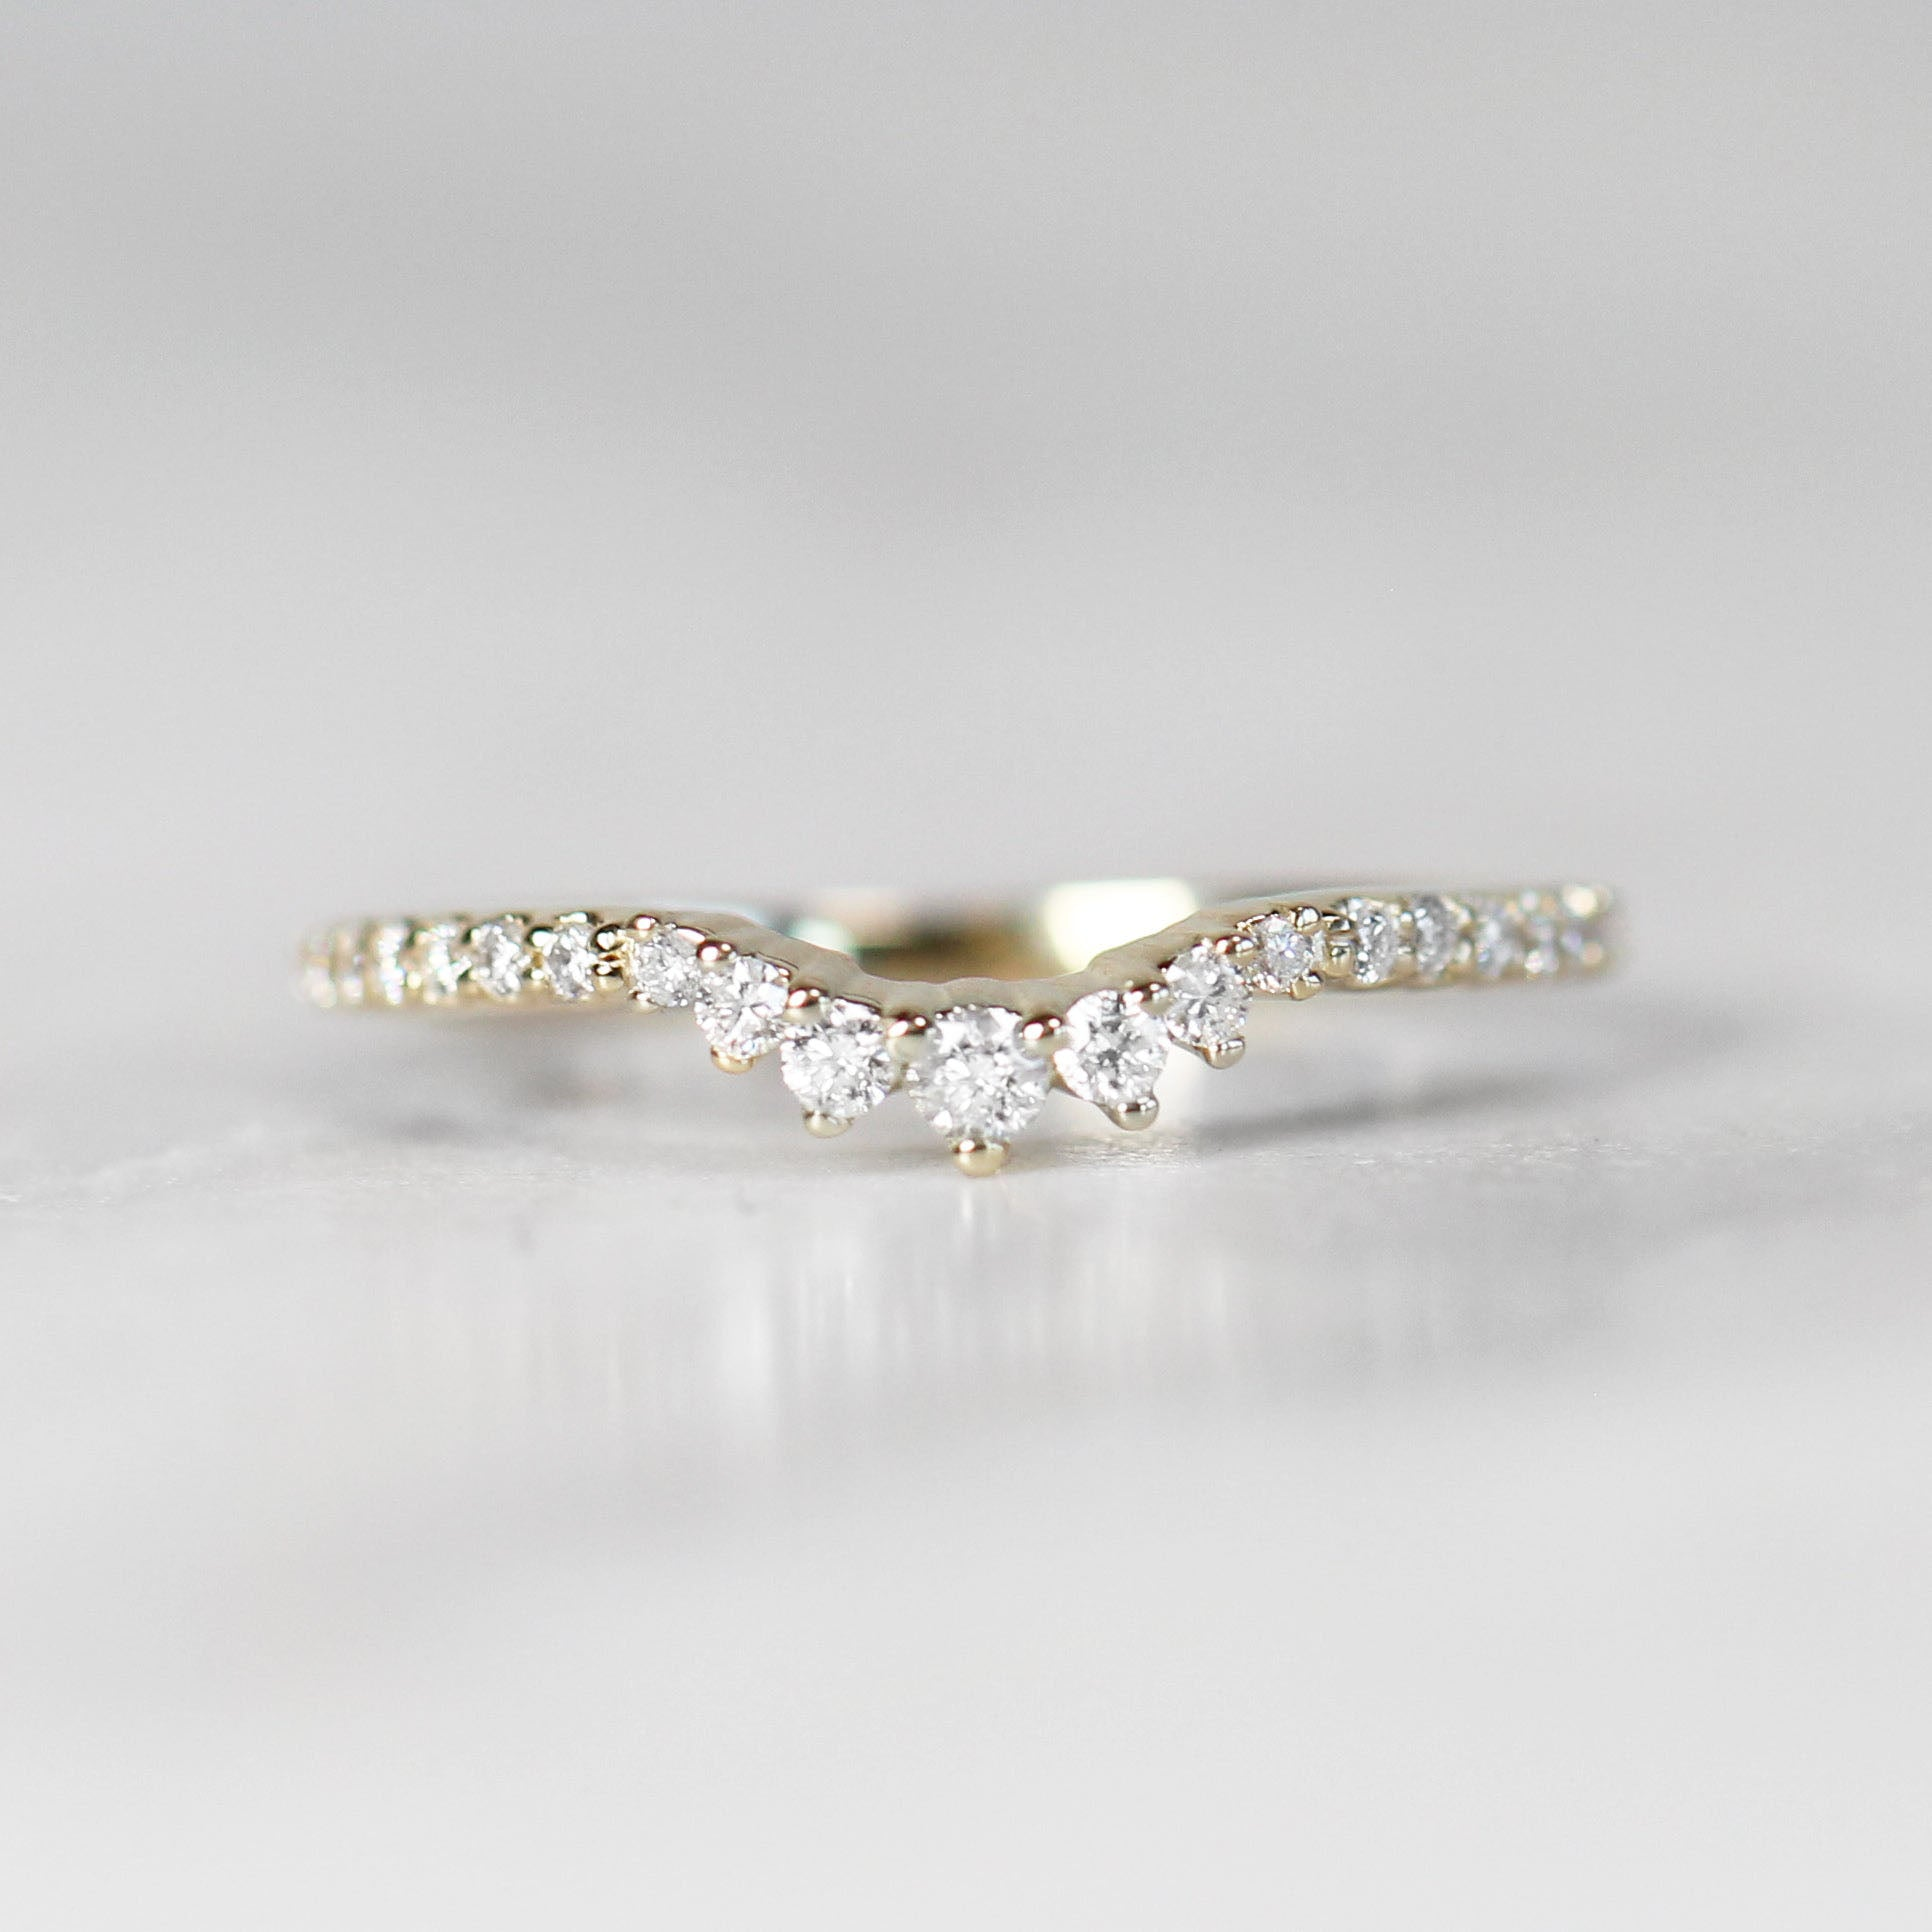 Maureen - Custom Designed Curved Diamond Wedding Stacking Band - Made to order - Celestial Diamonds ® by Midwinter Co.